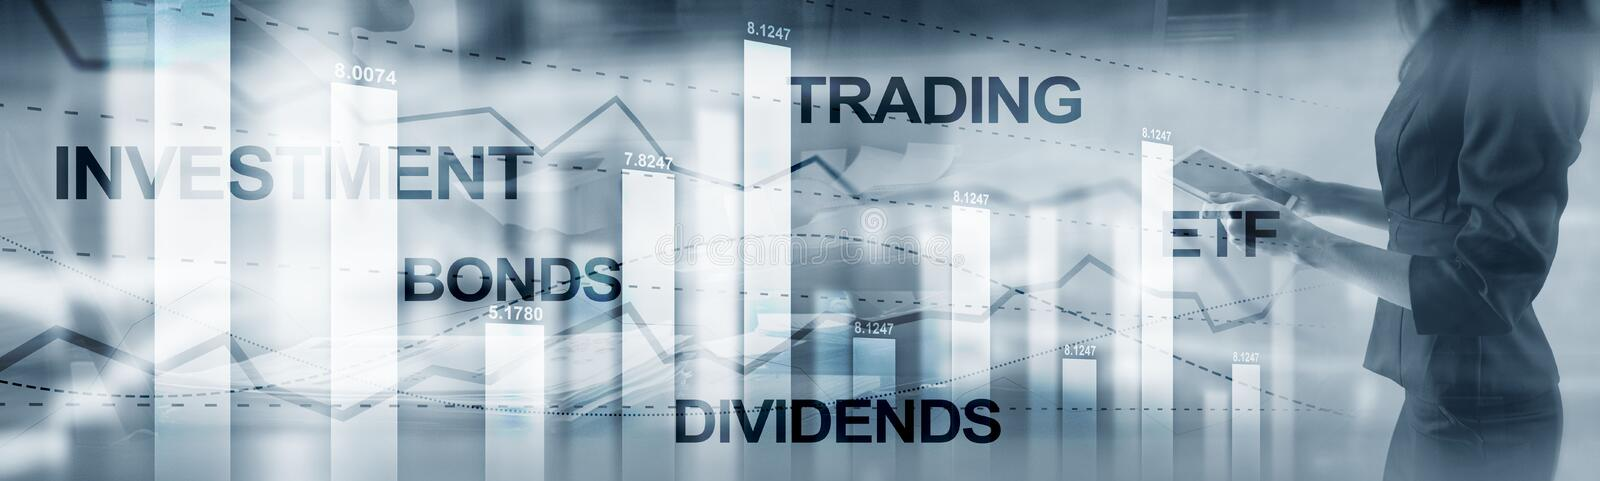 Bonds dividends concept. Abstract Business Finance Background Banner.  stock image